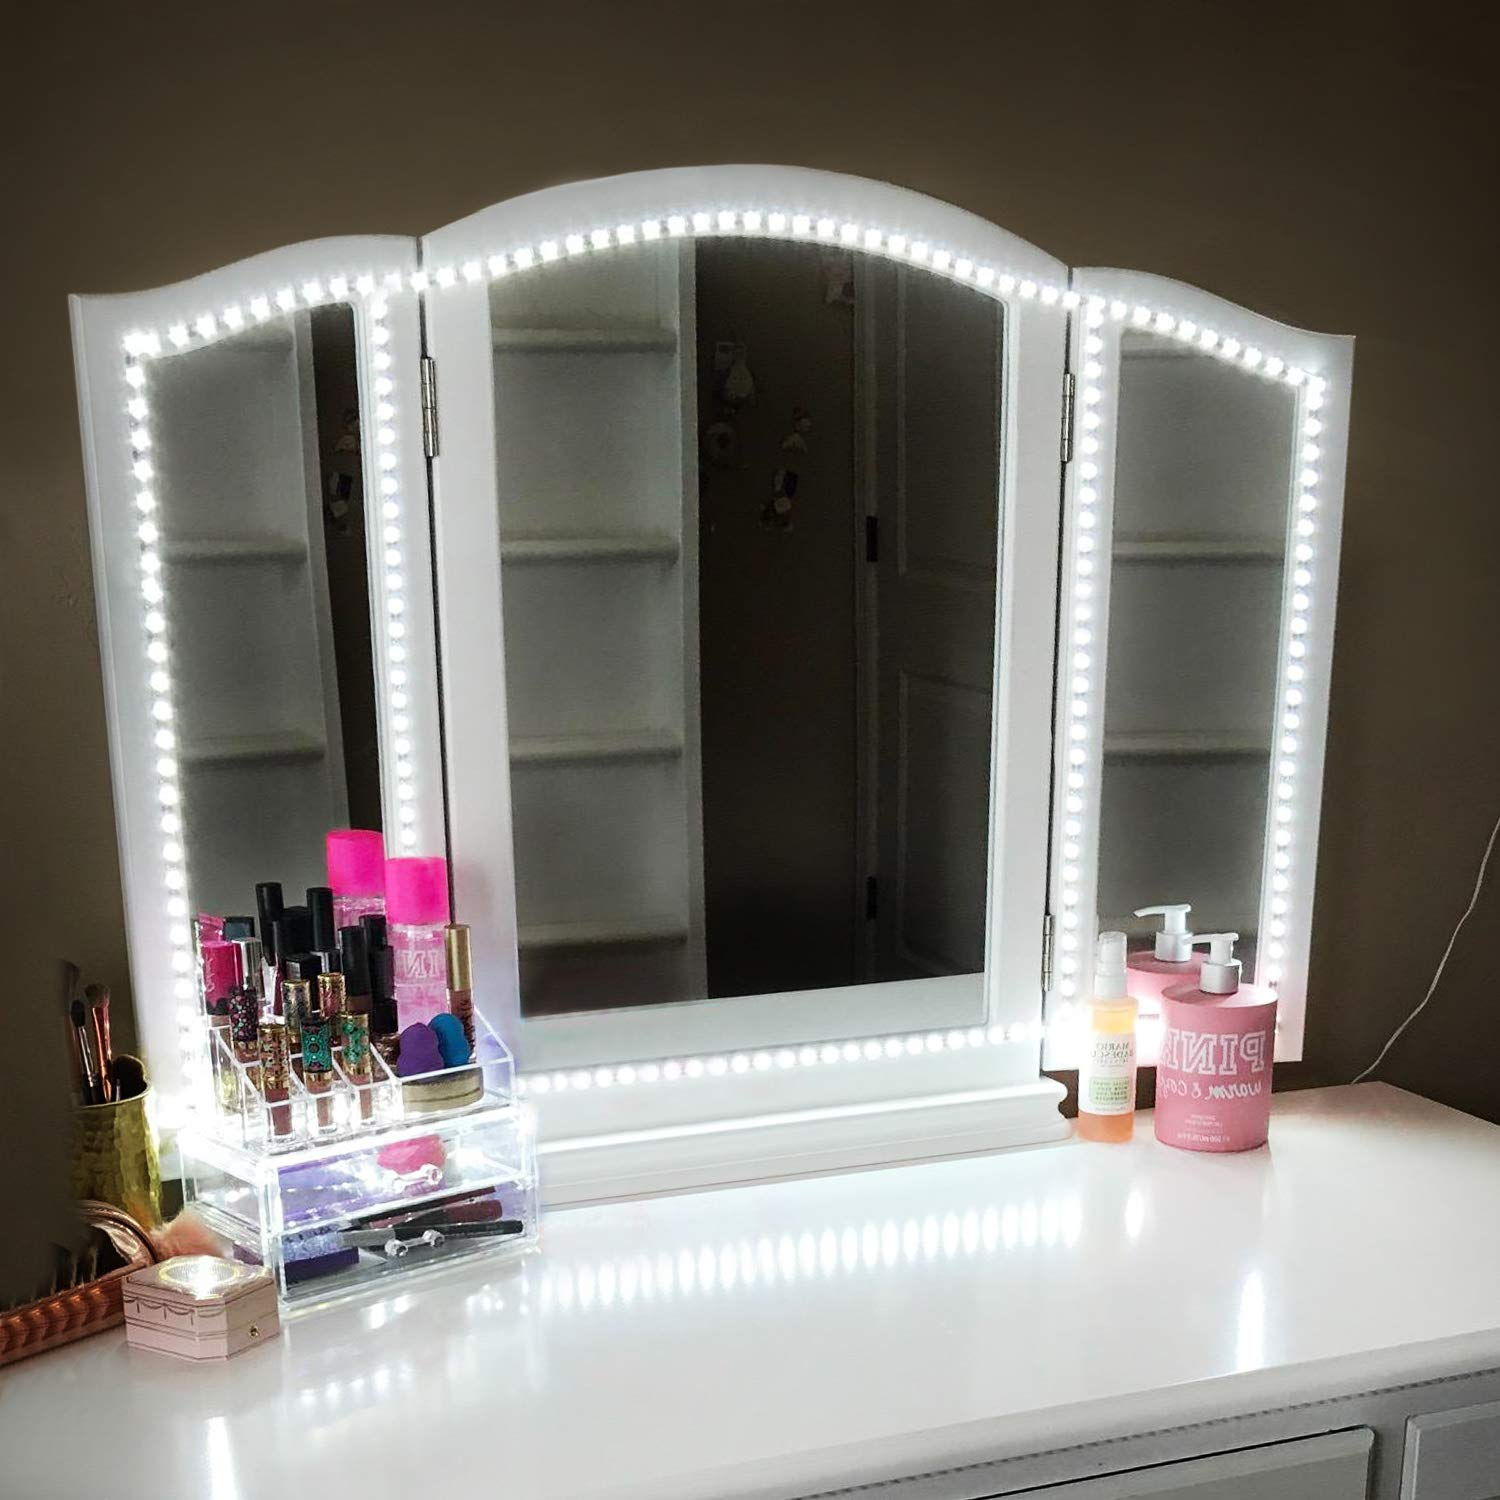 Led Vanity Mirror Lights Kit,ViLSOM 13ft/4M 240 LEDs Make-up Vanity Mirror Light for Vanity Makeup Table Set with Dimmer and Power Supply,Mirror not Included. by ViLSOM